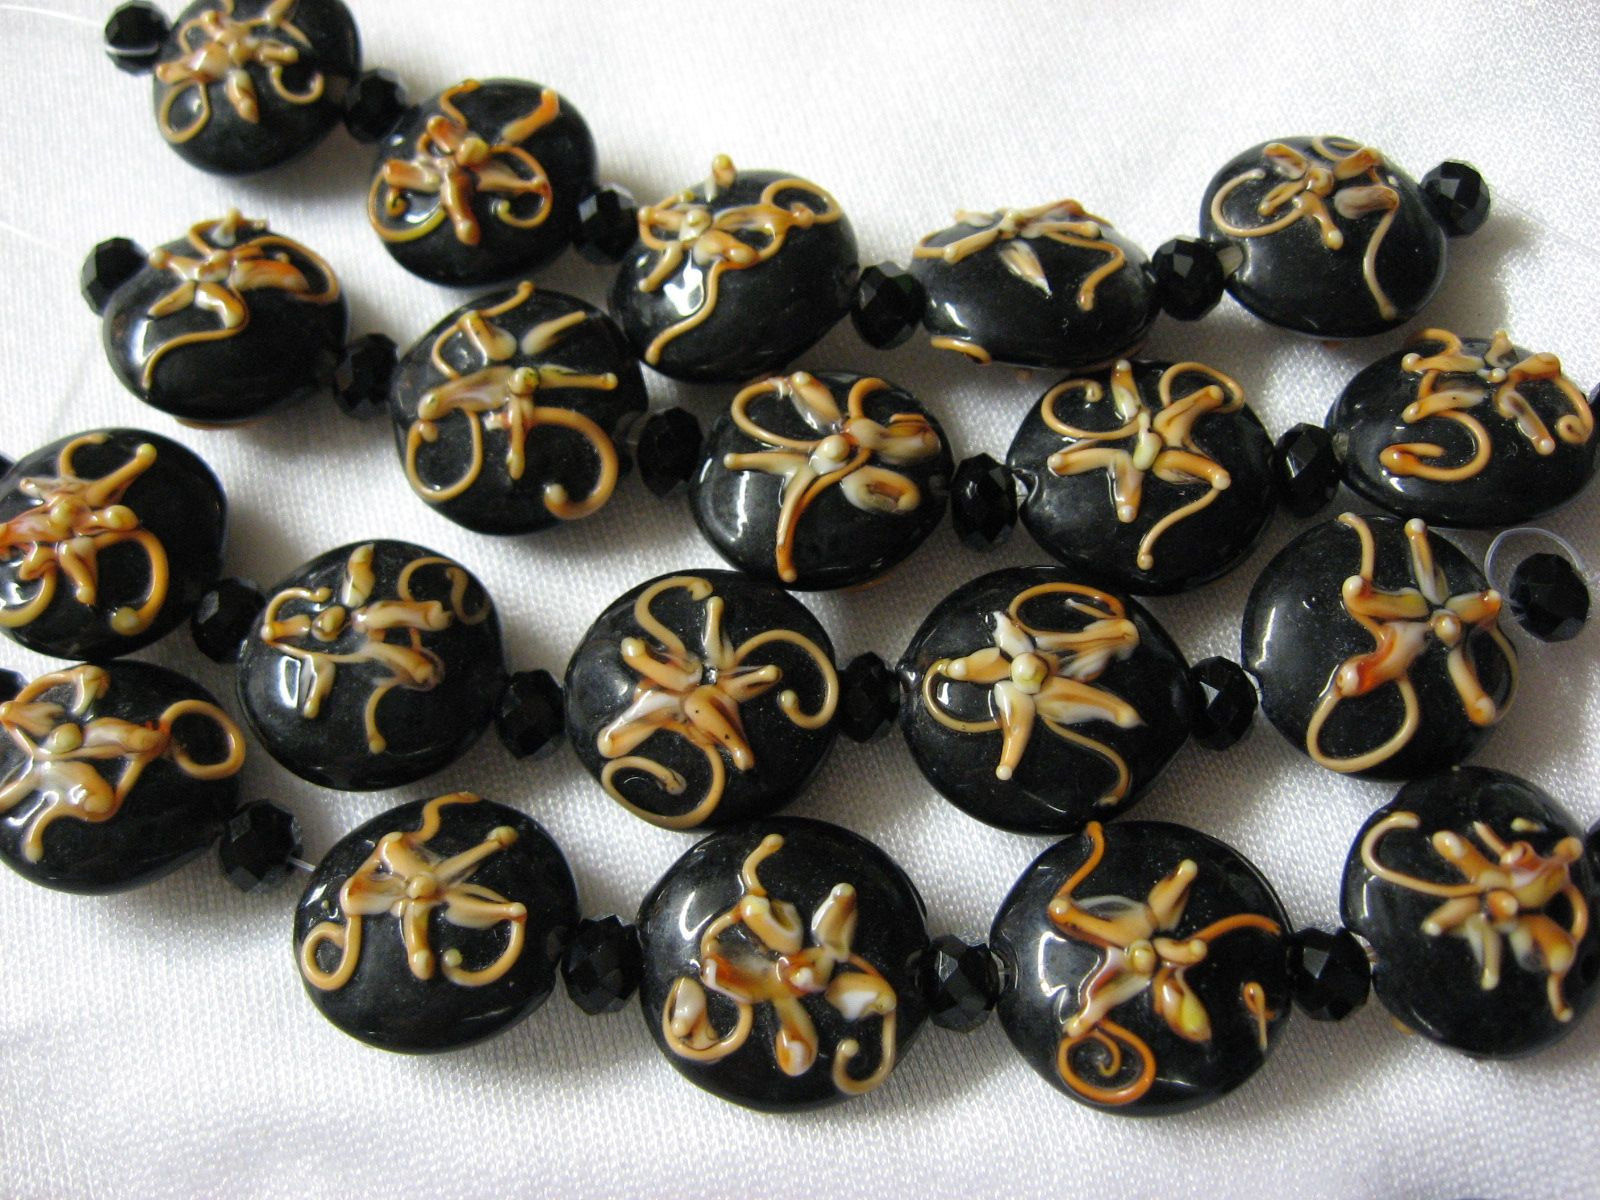 Round Lentil Lampwork Glass Beads, Black with Peach, 5 beads, 18mm